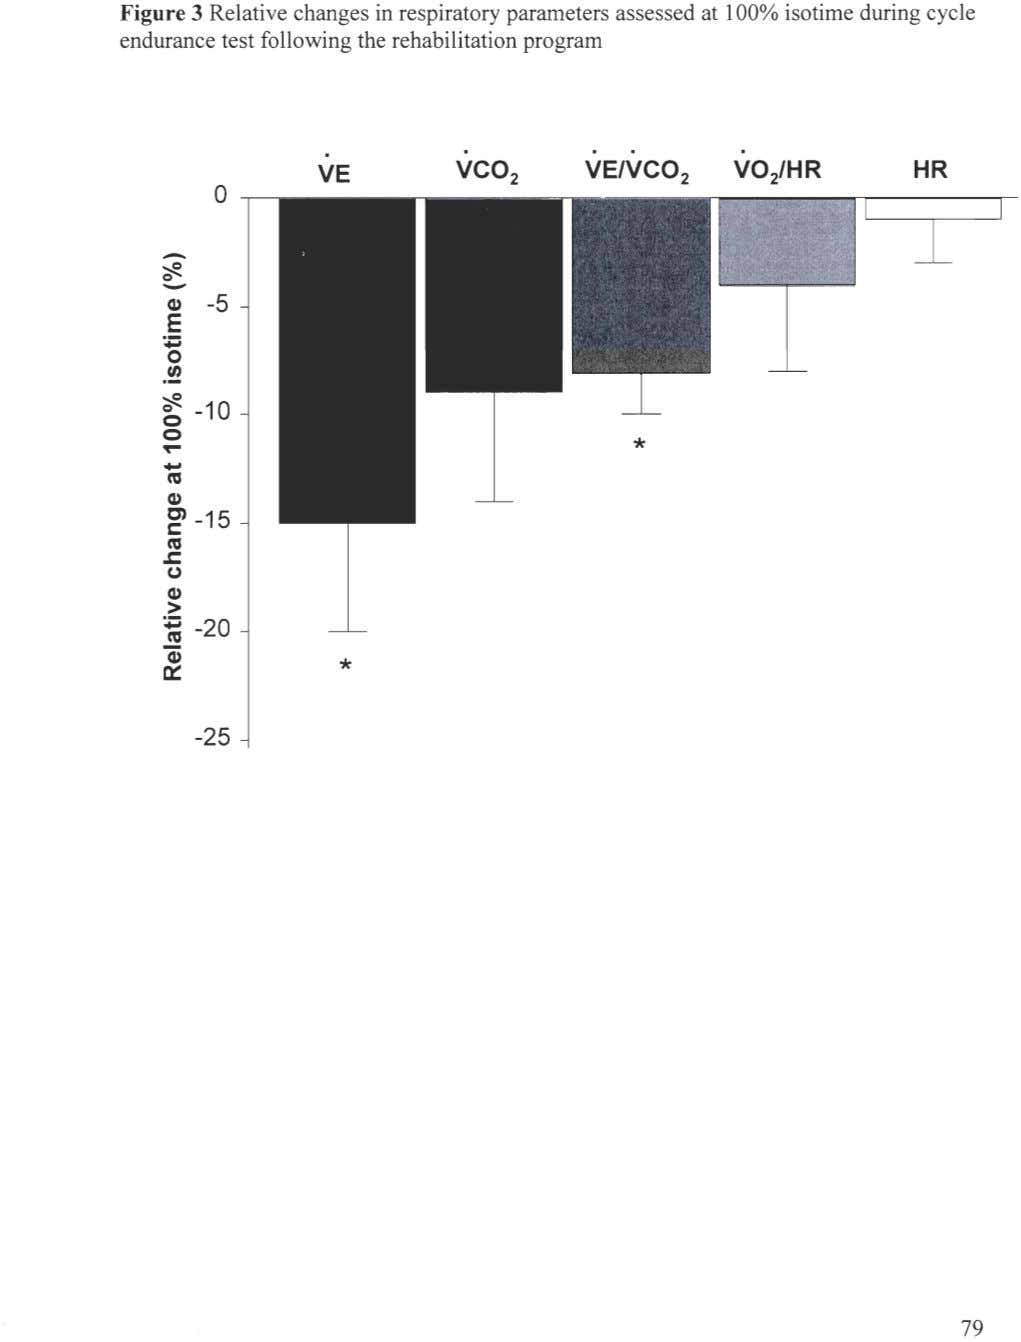 Figure 3 Relative changes in respiratory parameters assessed at 100% isotime during cycle endurance test